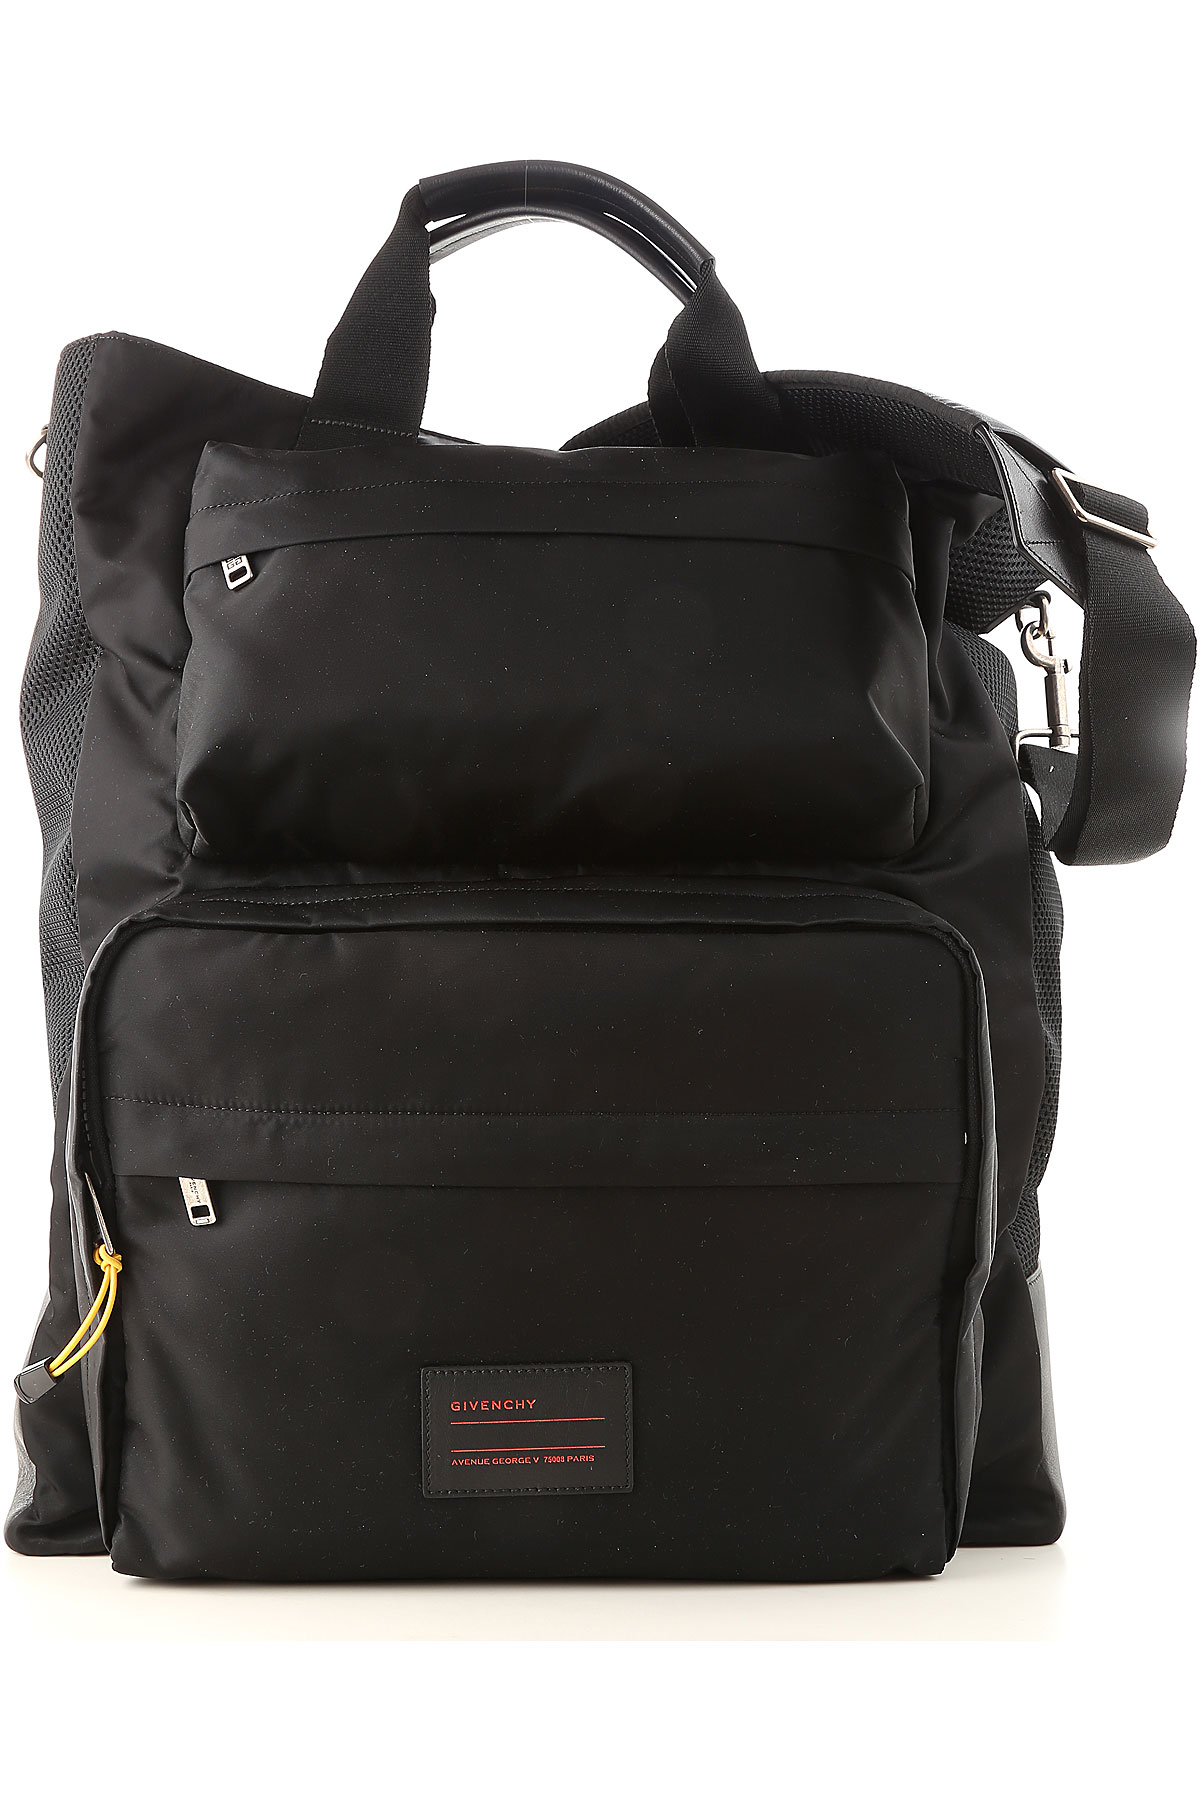 Image of Givenchy Weekender Duffel Bag for Men, Black, Fabric, 2017